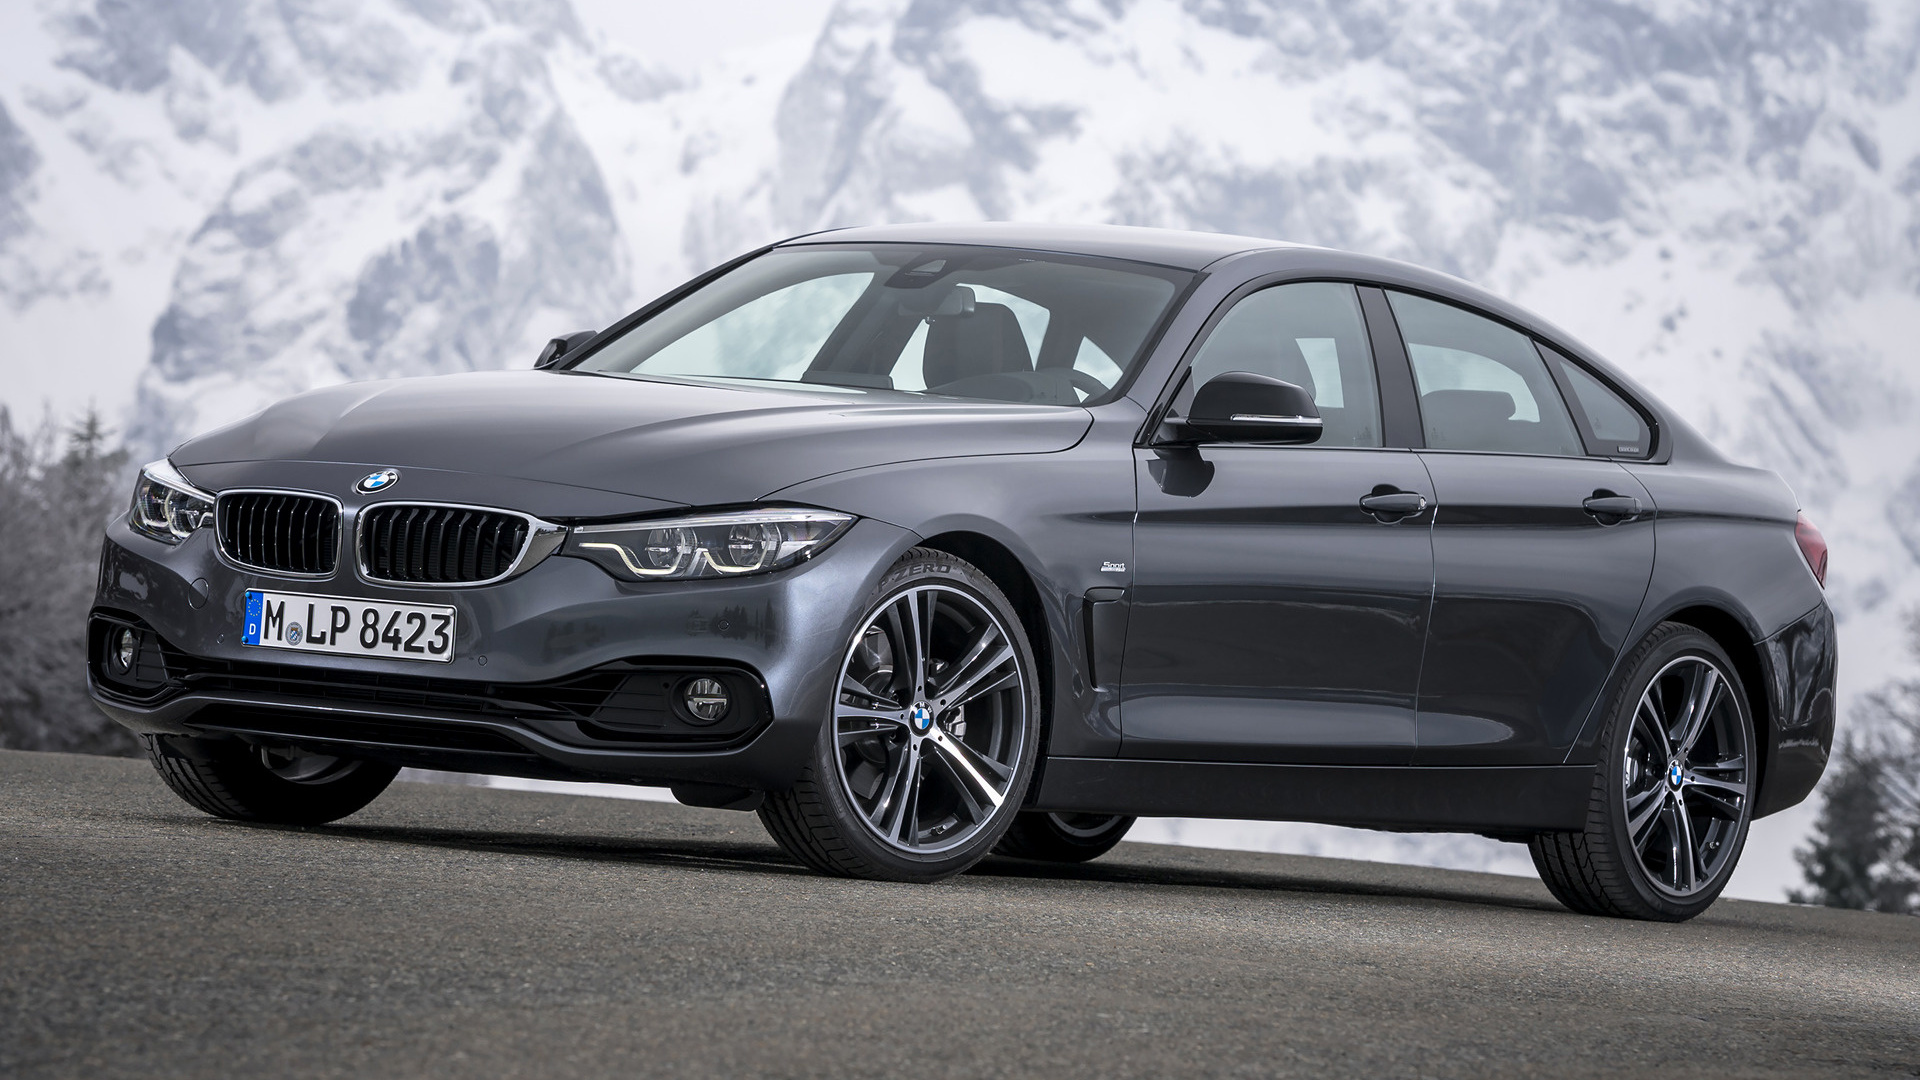 2017 Bmw 4 Series Gran Coupe Wallpapers And Hd Images